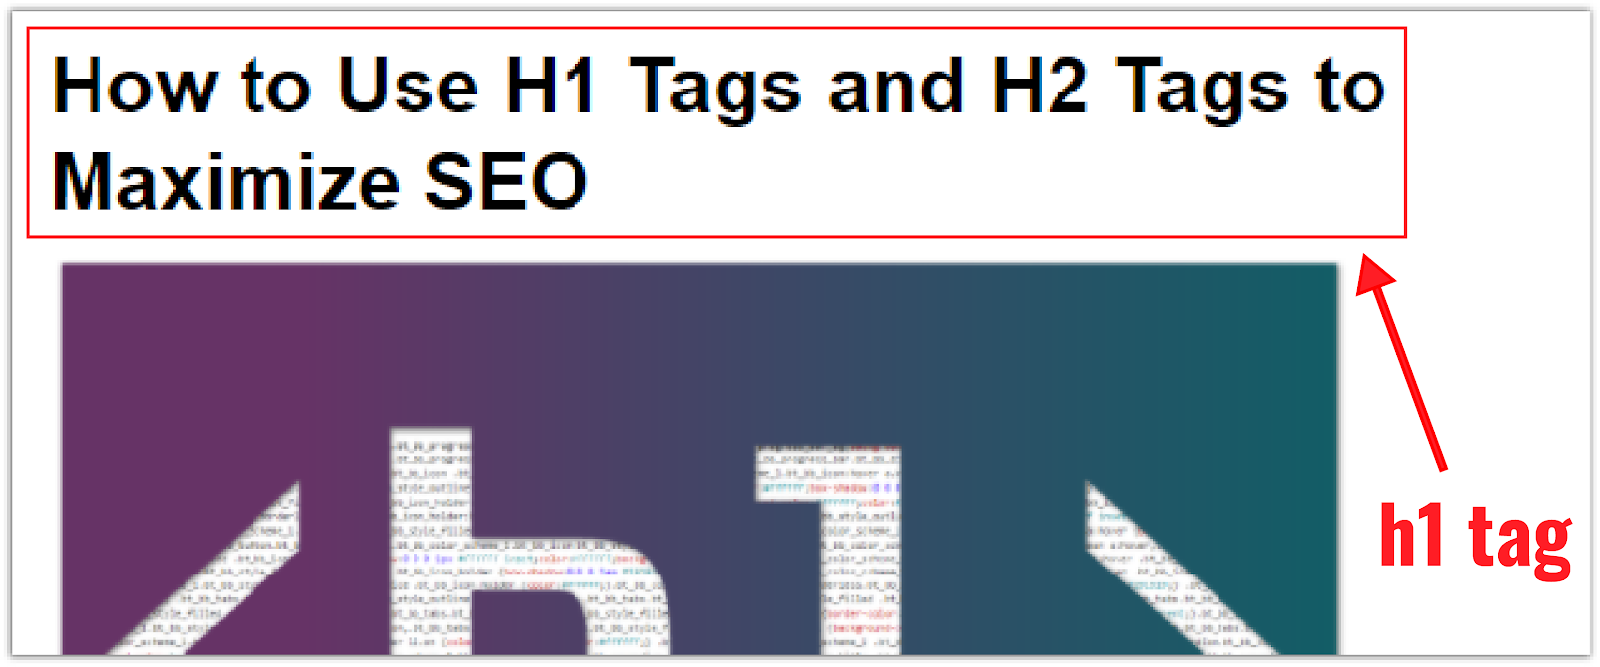 """H1 Tag for """"how to use h1 tags and h2 tags to maximize seo"""""""